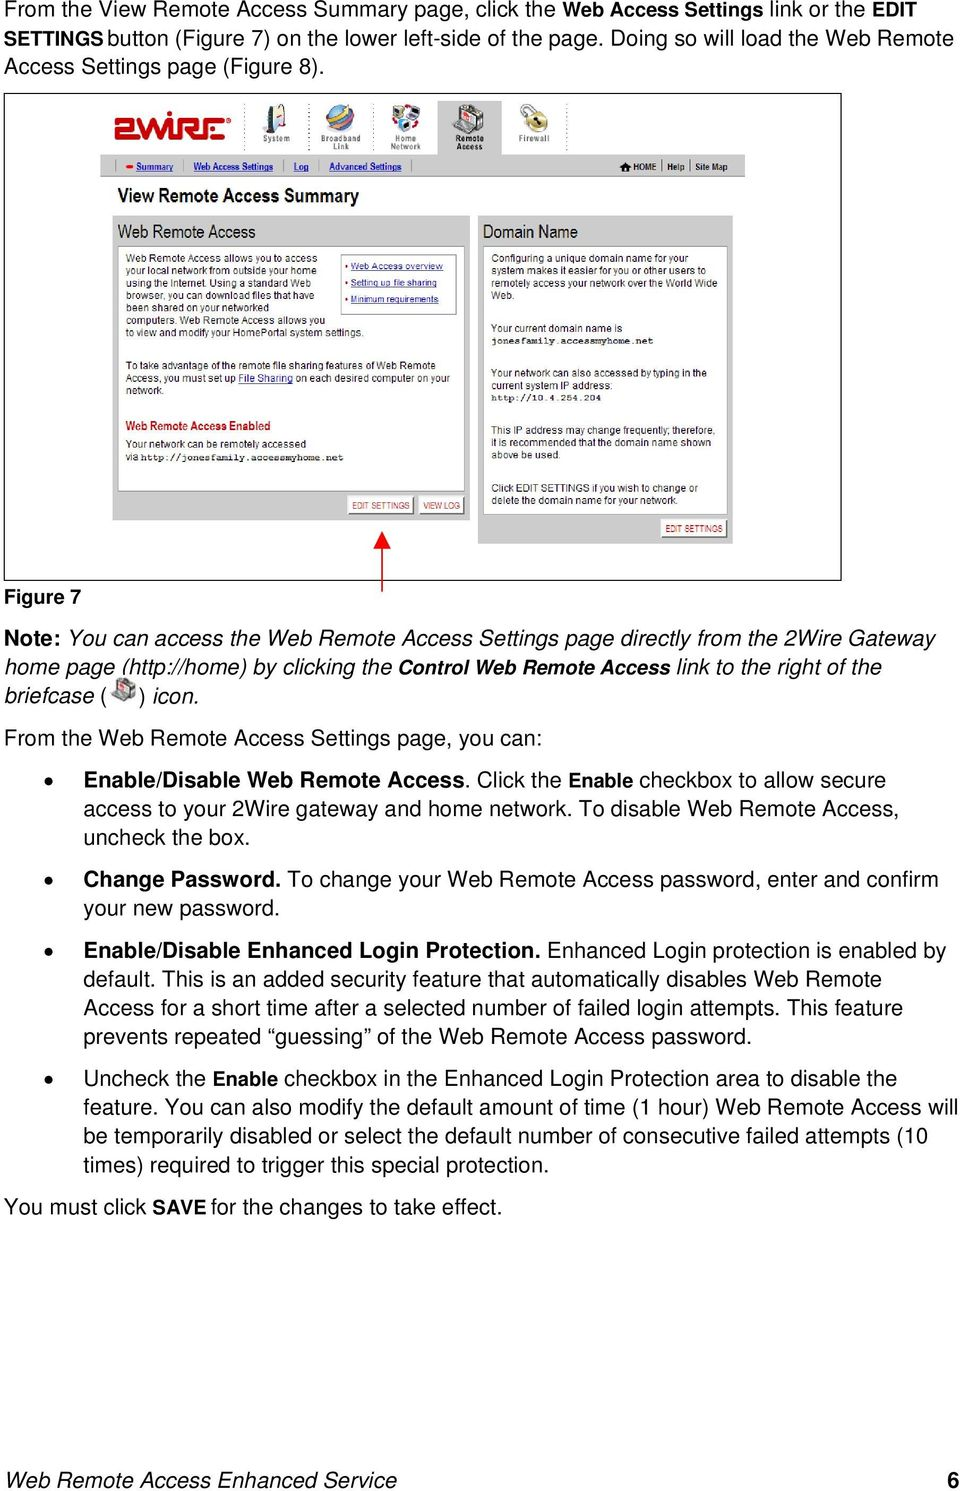 Figure 7 Note: You can access the Web Remote Access Settings page directly from the 2Wire Gateway home page (http://home) by clicking the Control Web Remote Access link to the right of the briefcase